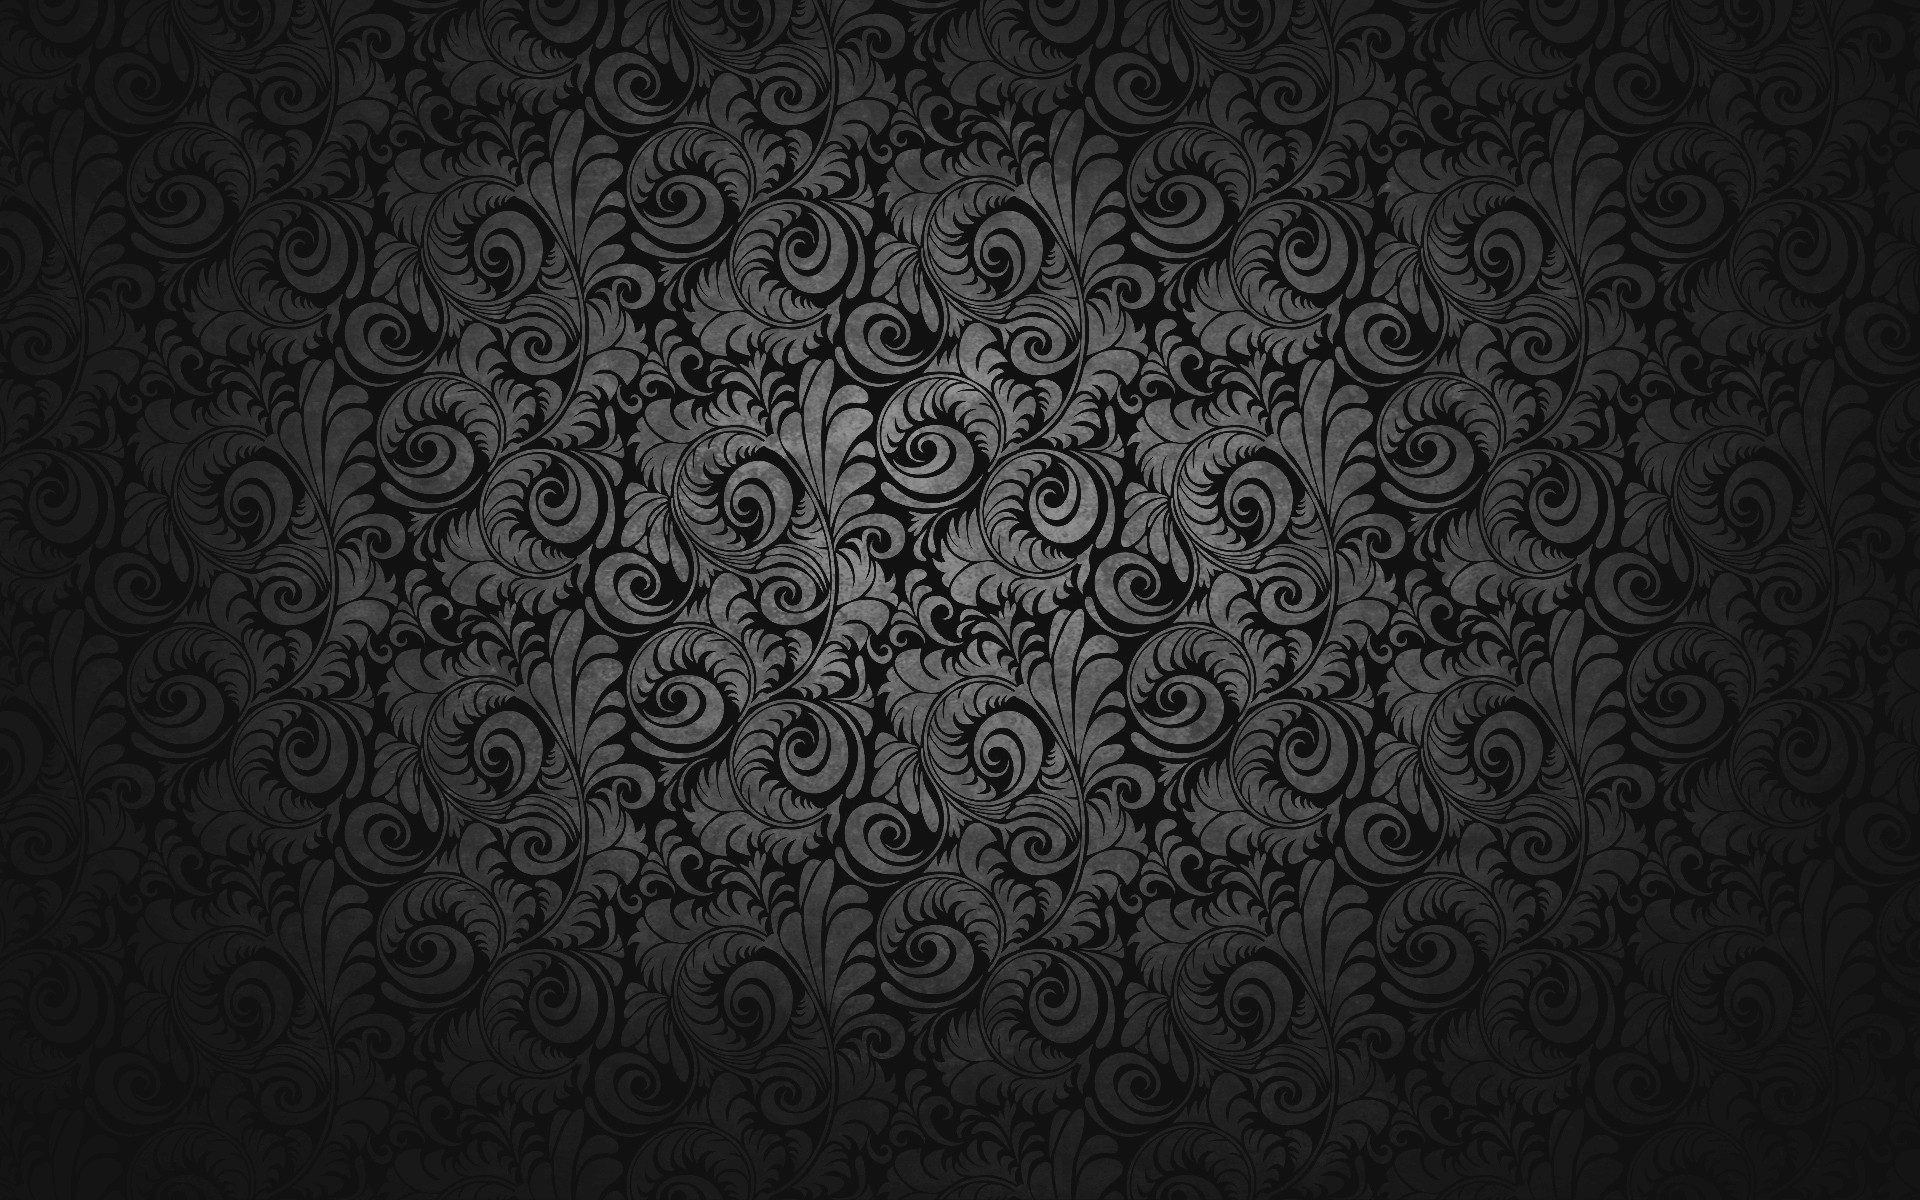 Page : Full HD p Textures Wallpapers, Desktop Backgrounds HD Textured Wallpapers  HD Wallpapers)